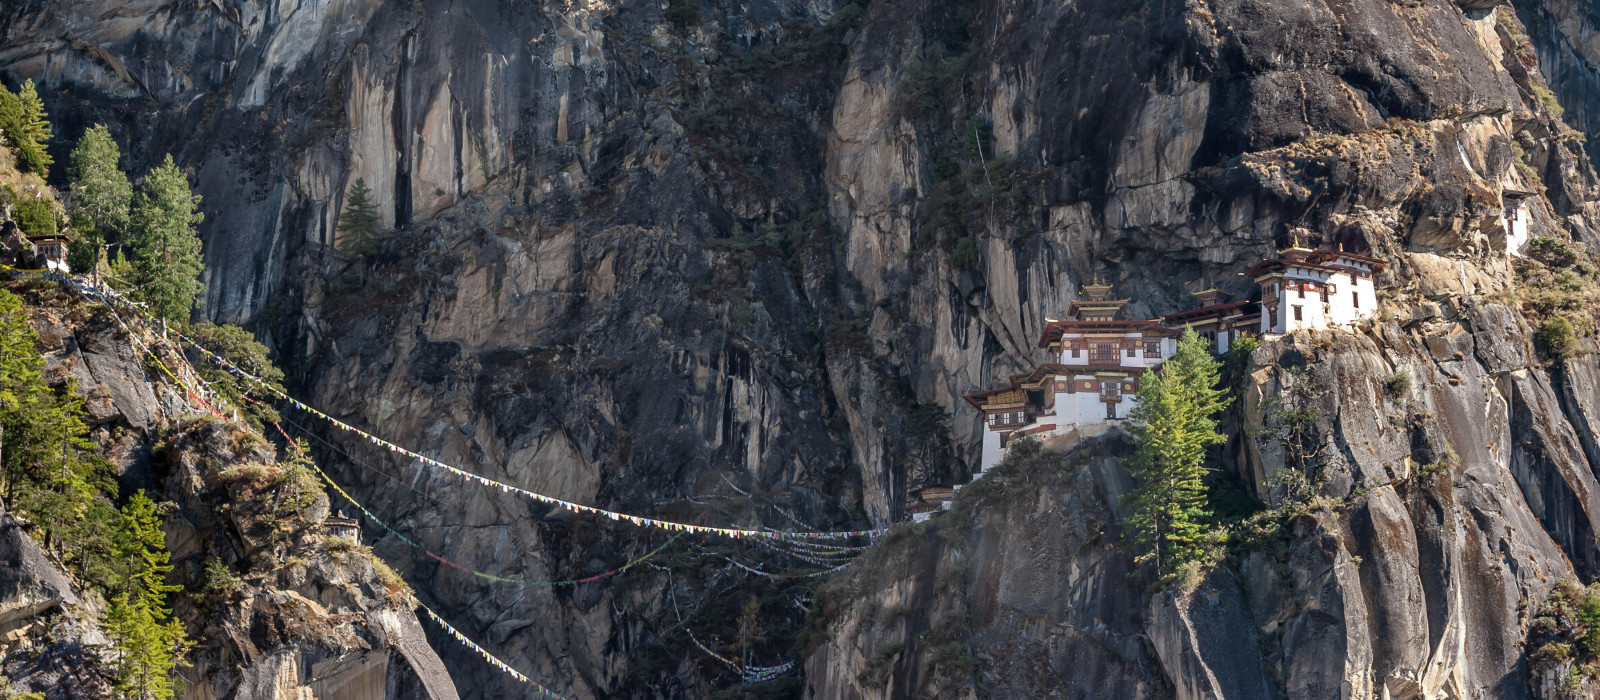 Panorama view of famous Tiger's Nest in Bhutan, Asia